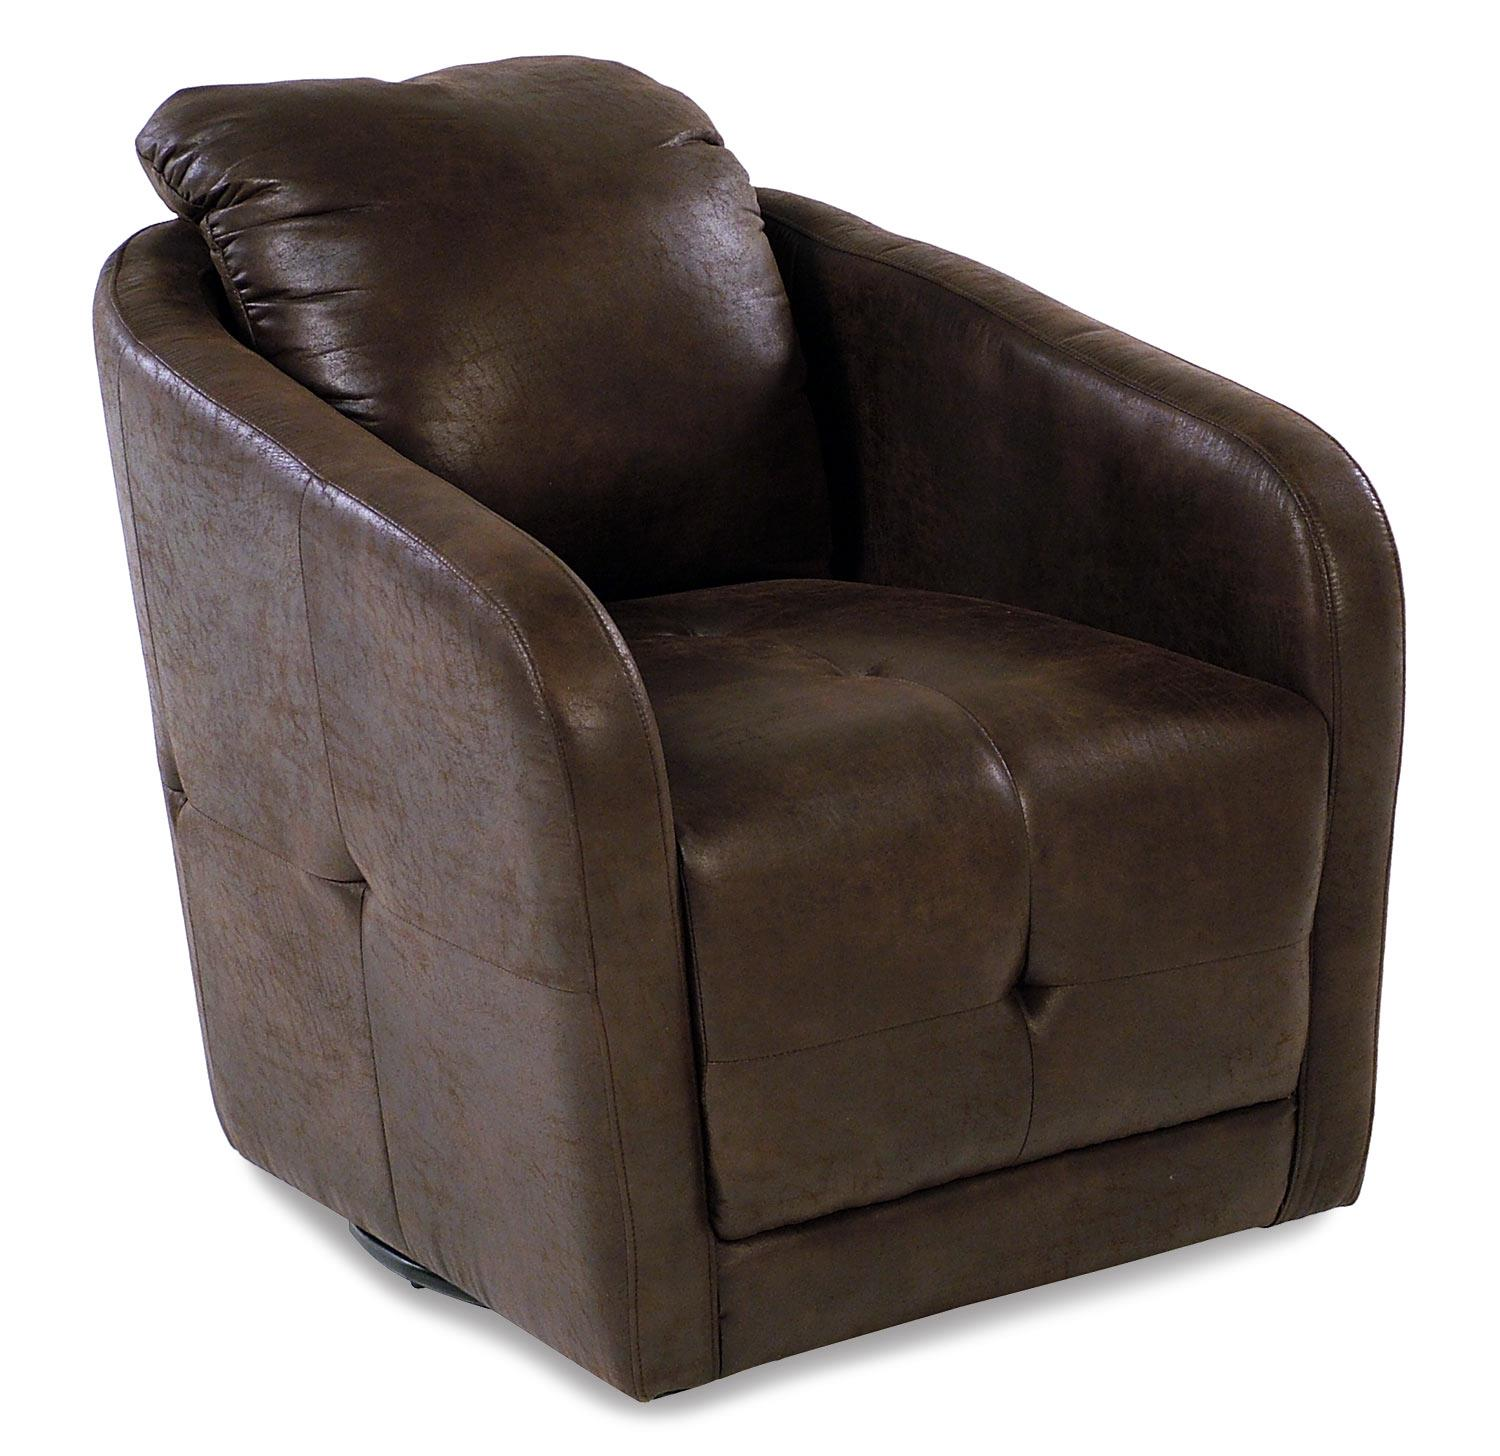 Madison Manor Accent Chairs Swivel Chair w/ Tuft Stitching - Item Number: AV-BRNFX